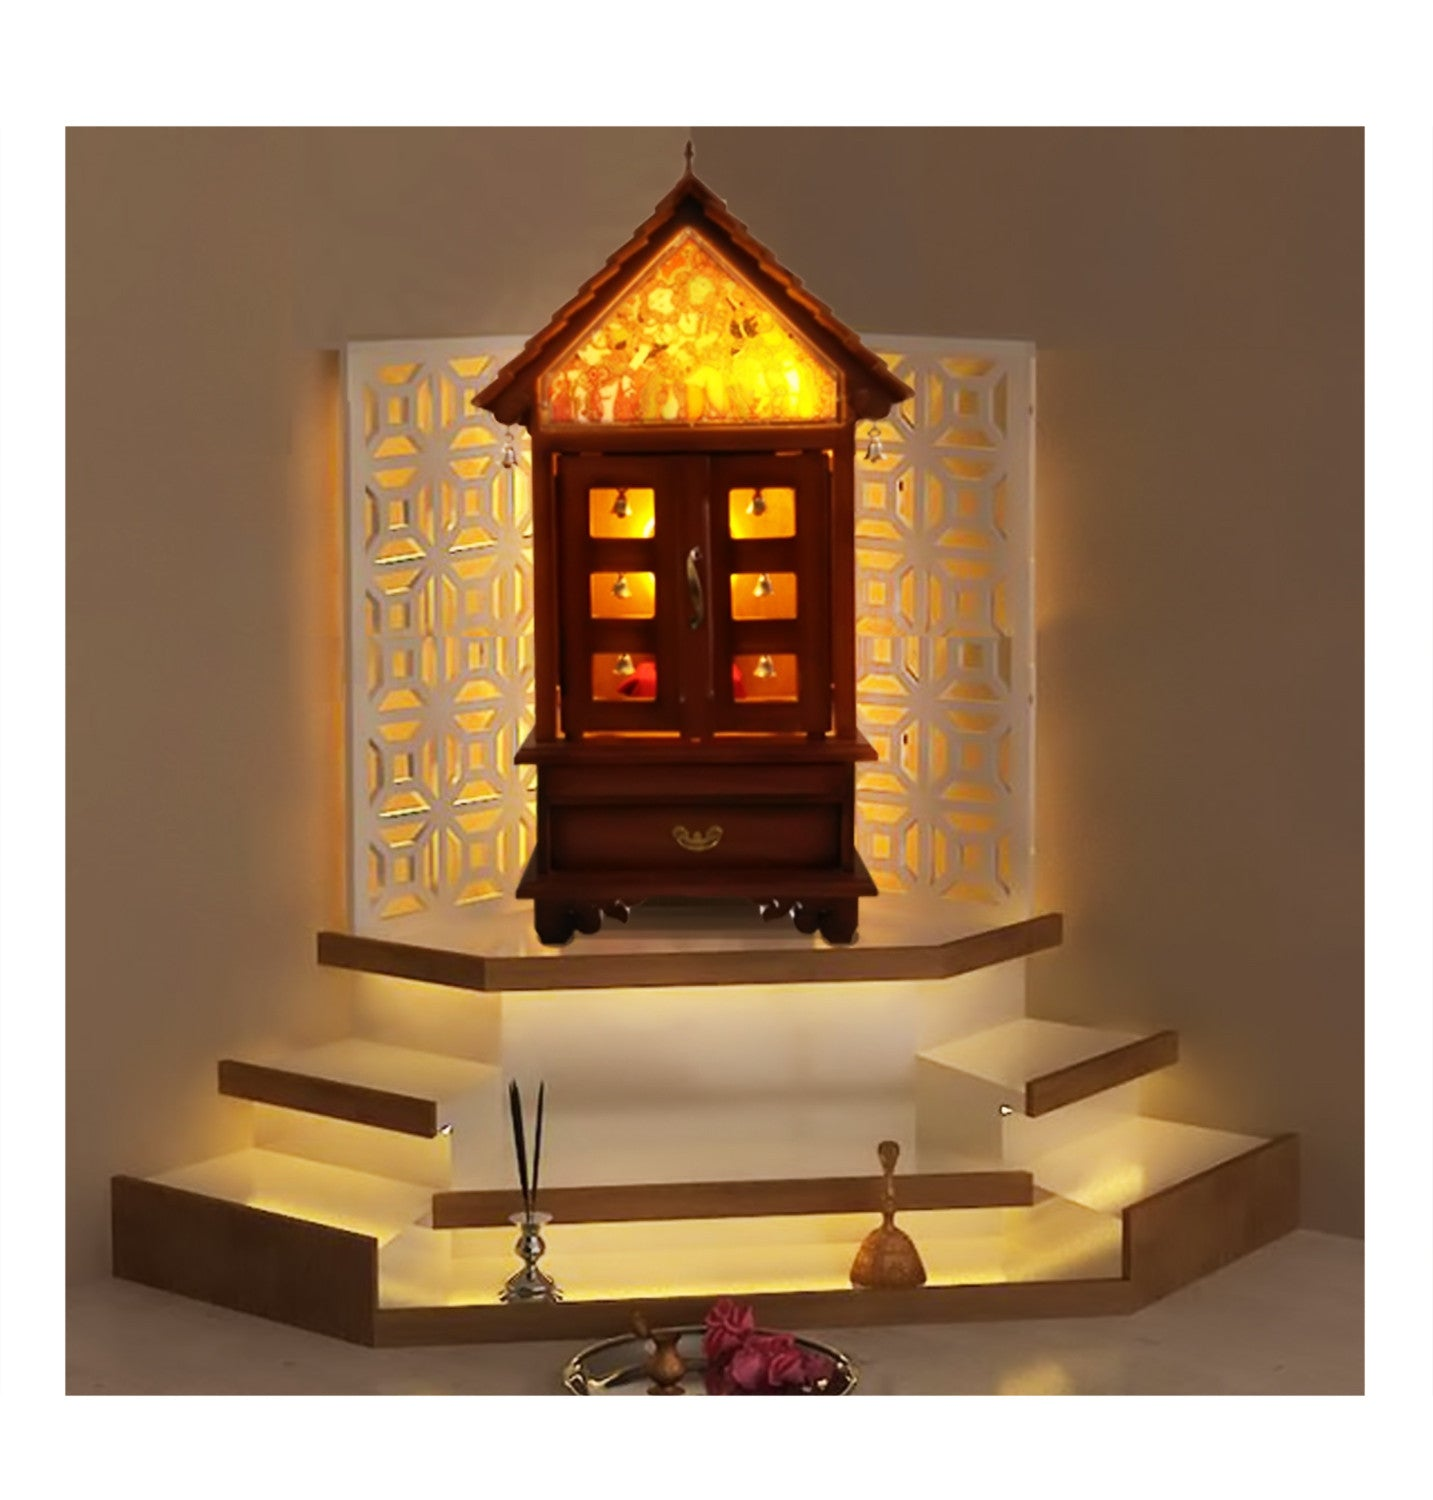 bf47baadb08 Pooja Mandirs Online Swasthy Sreekovil Home Decor Wooden Temple For  Devotional